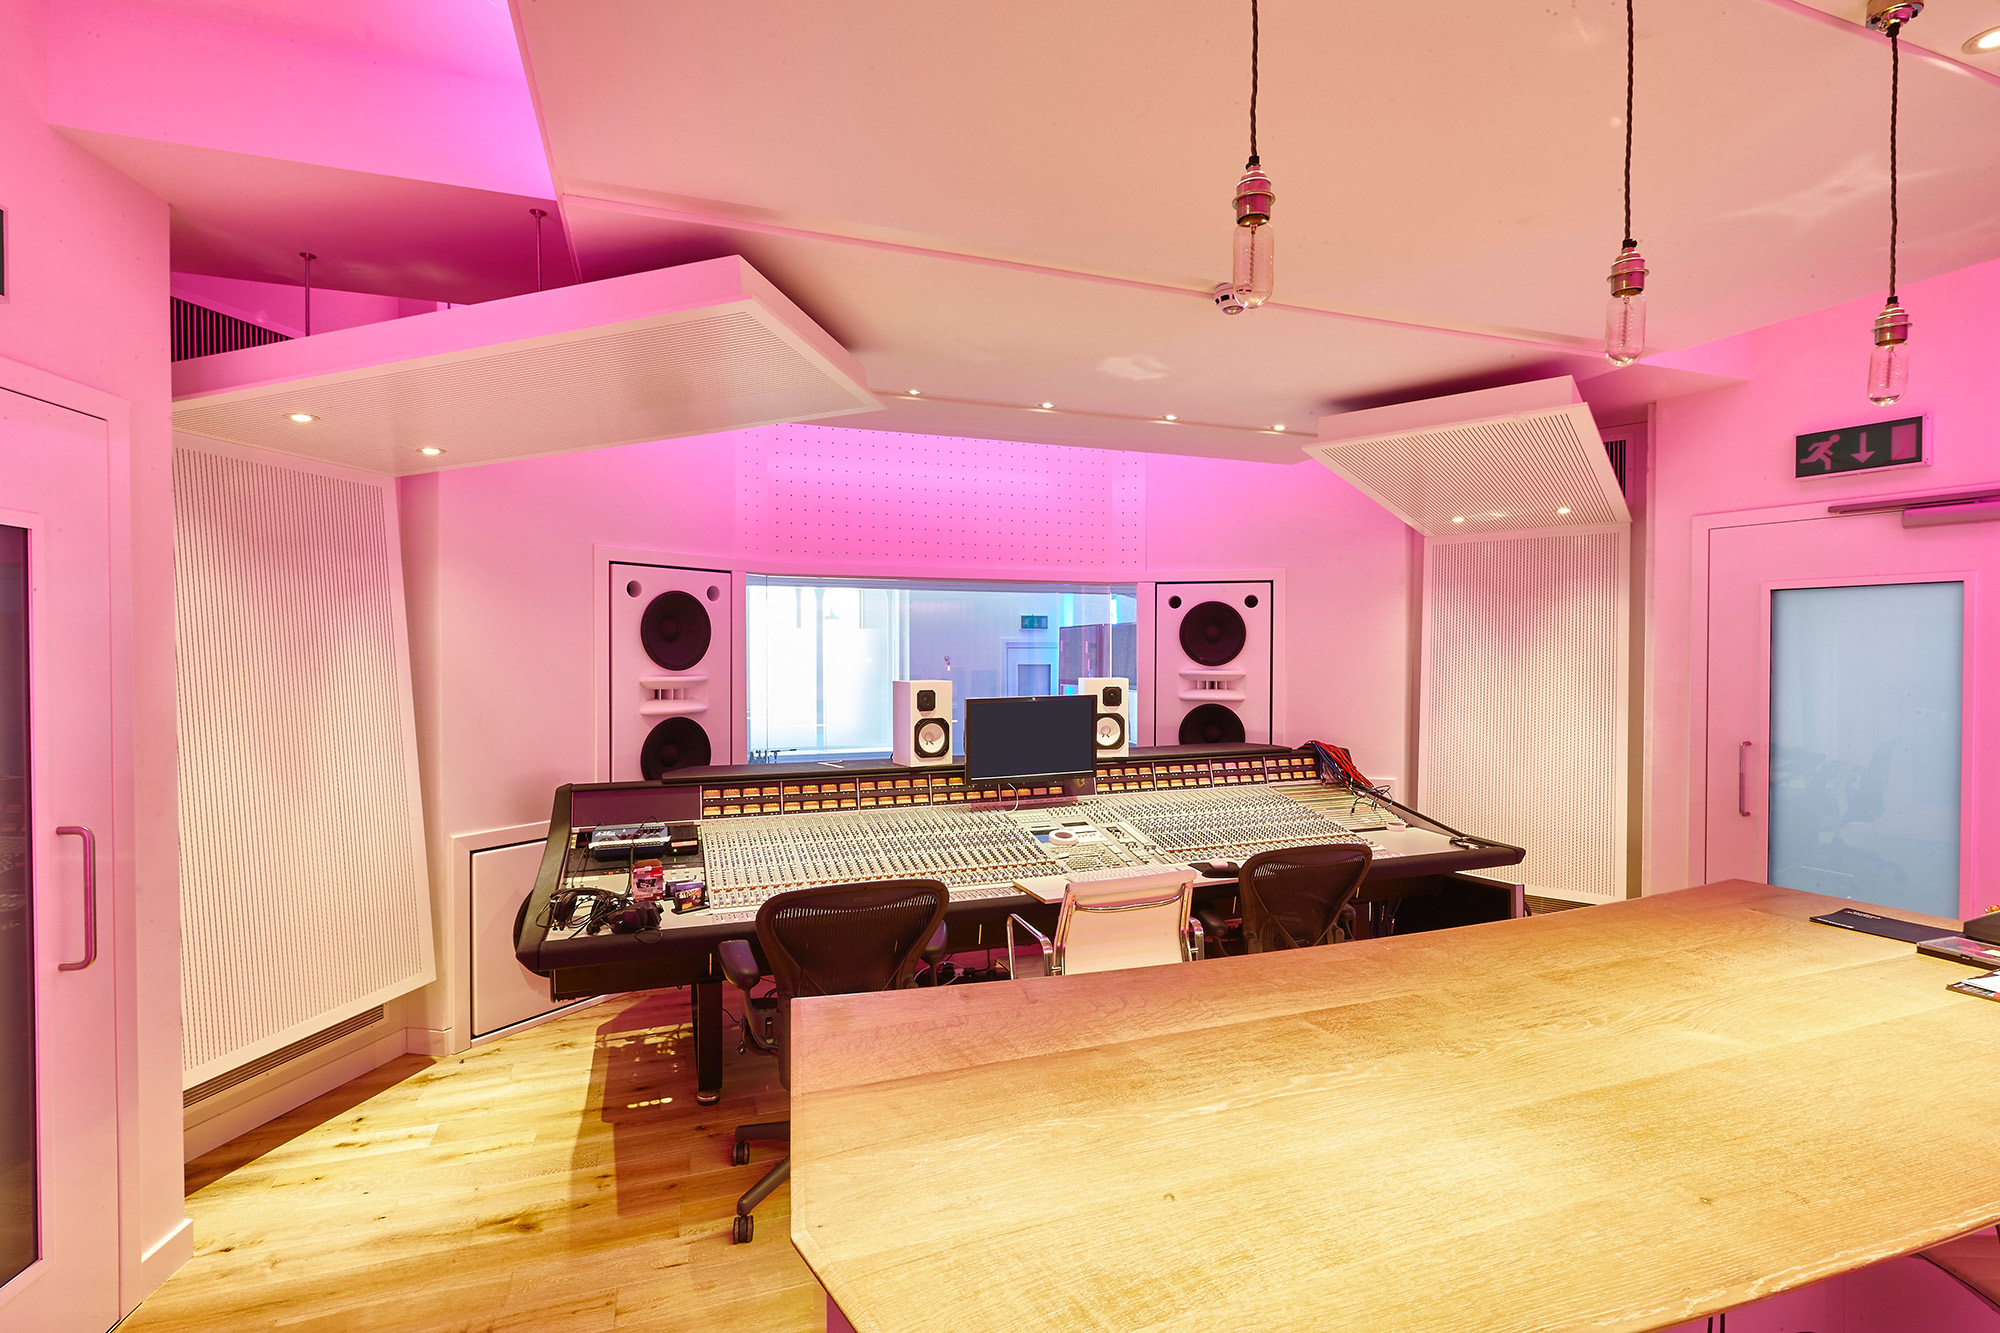 Designed audio and sound installation service with DJ equipment and speakers